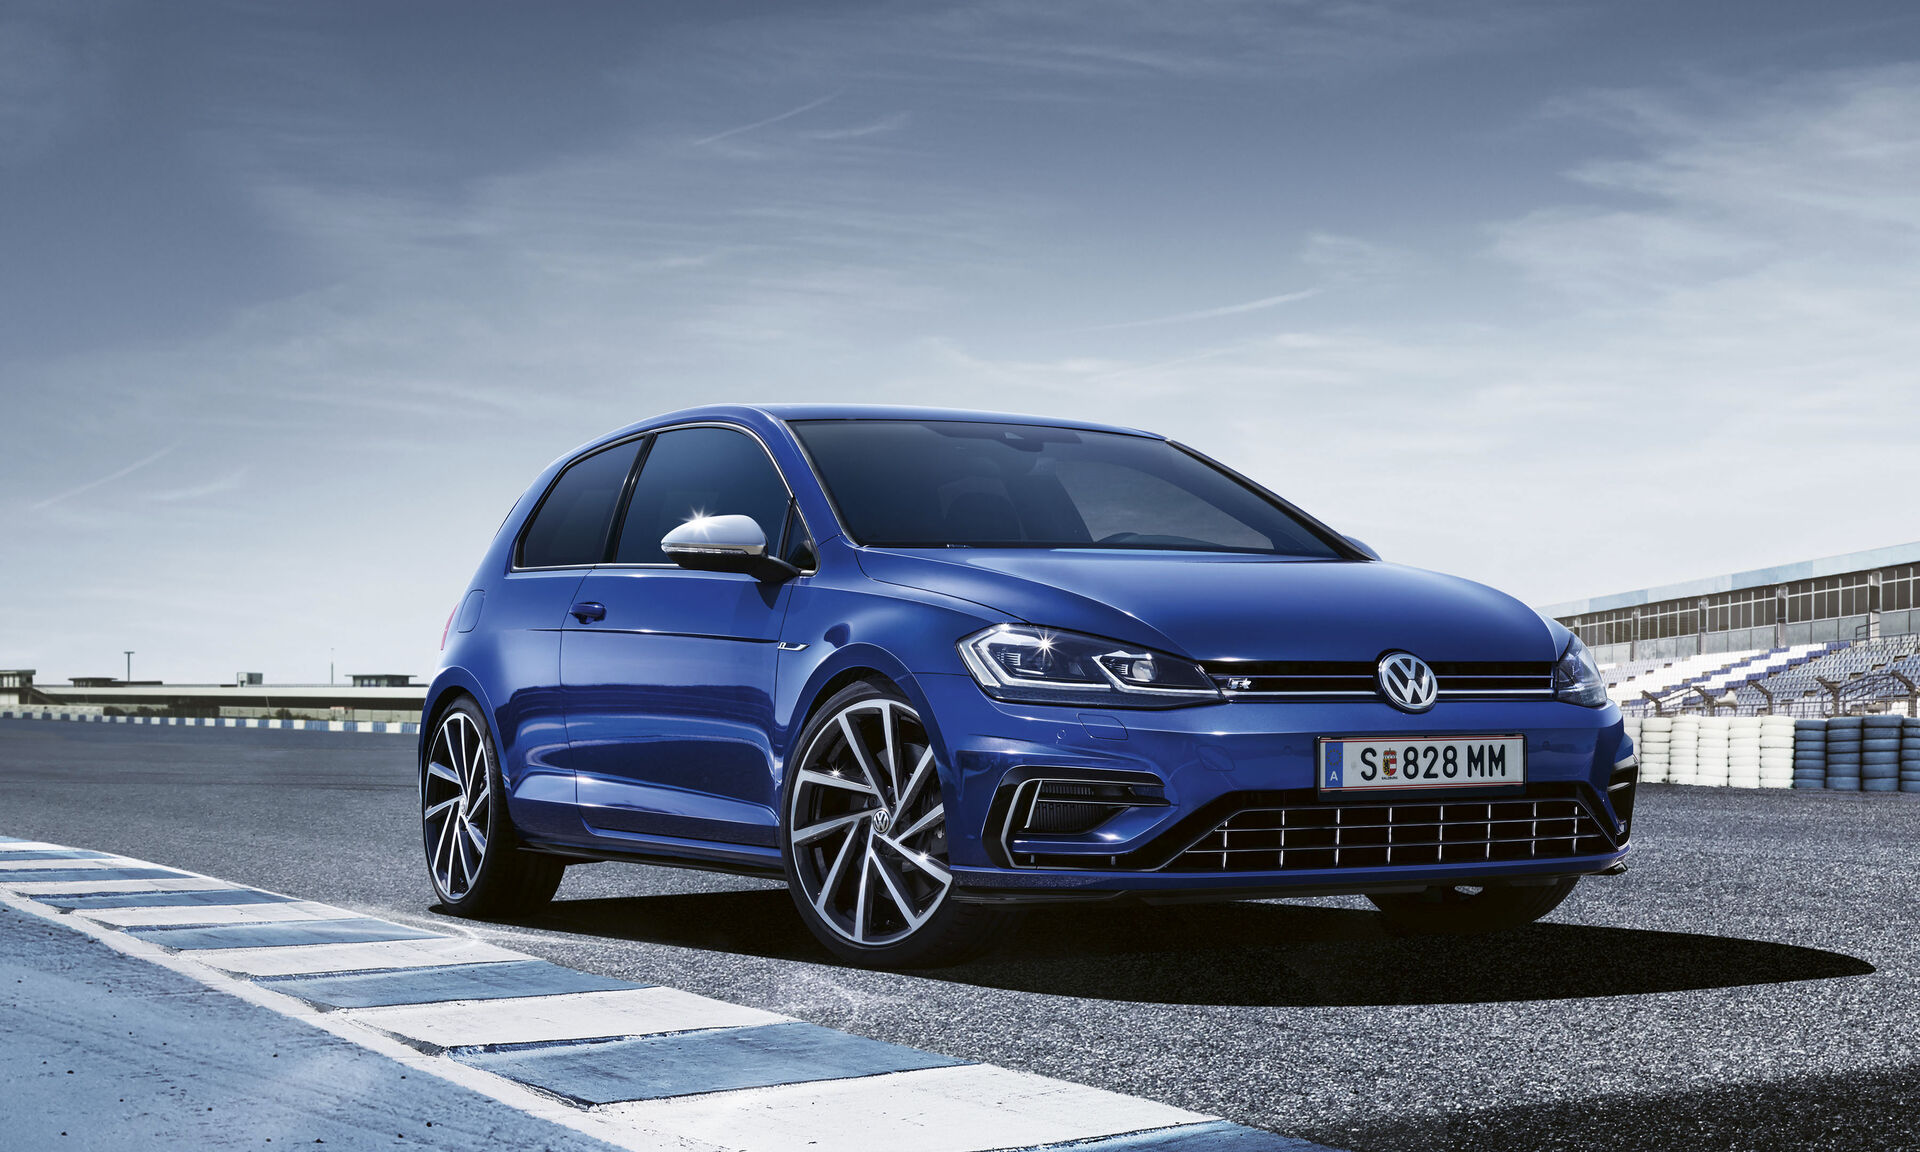 vw golf r blau lapiz blue